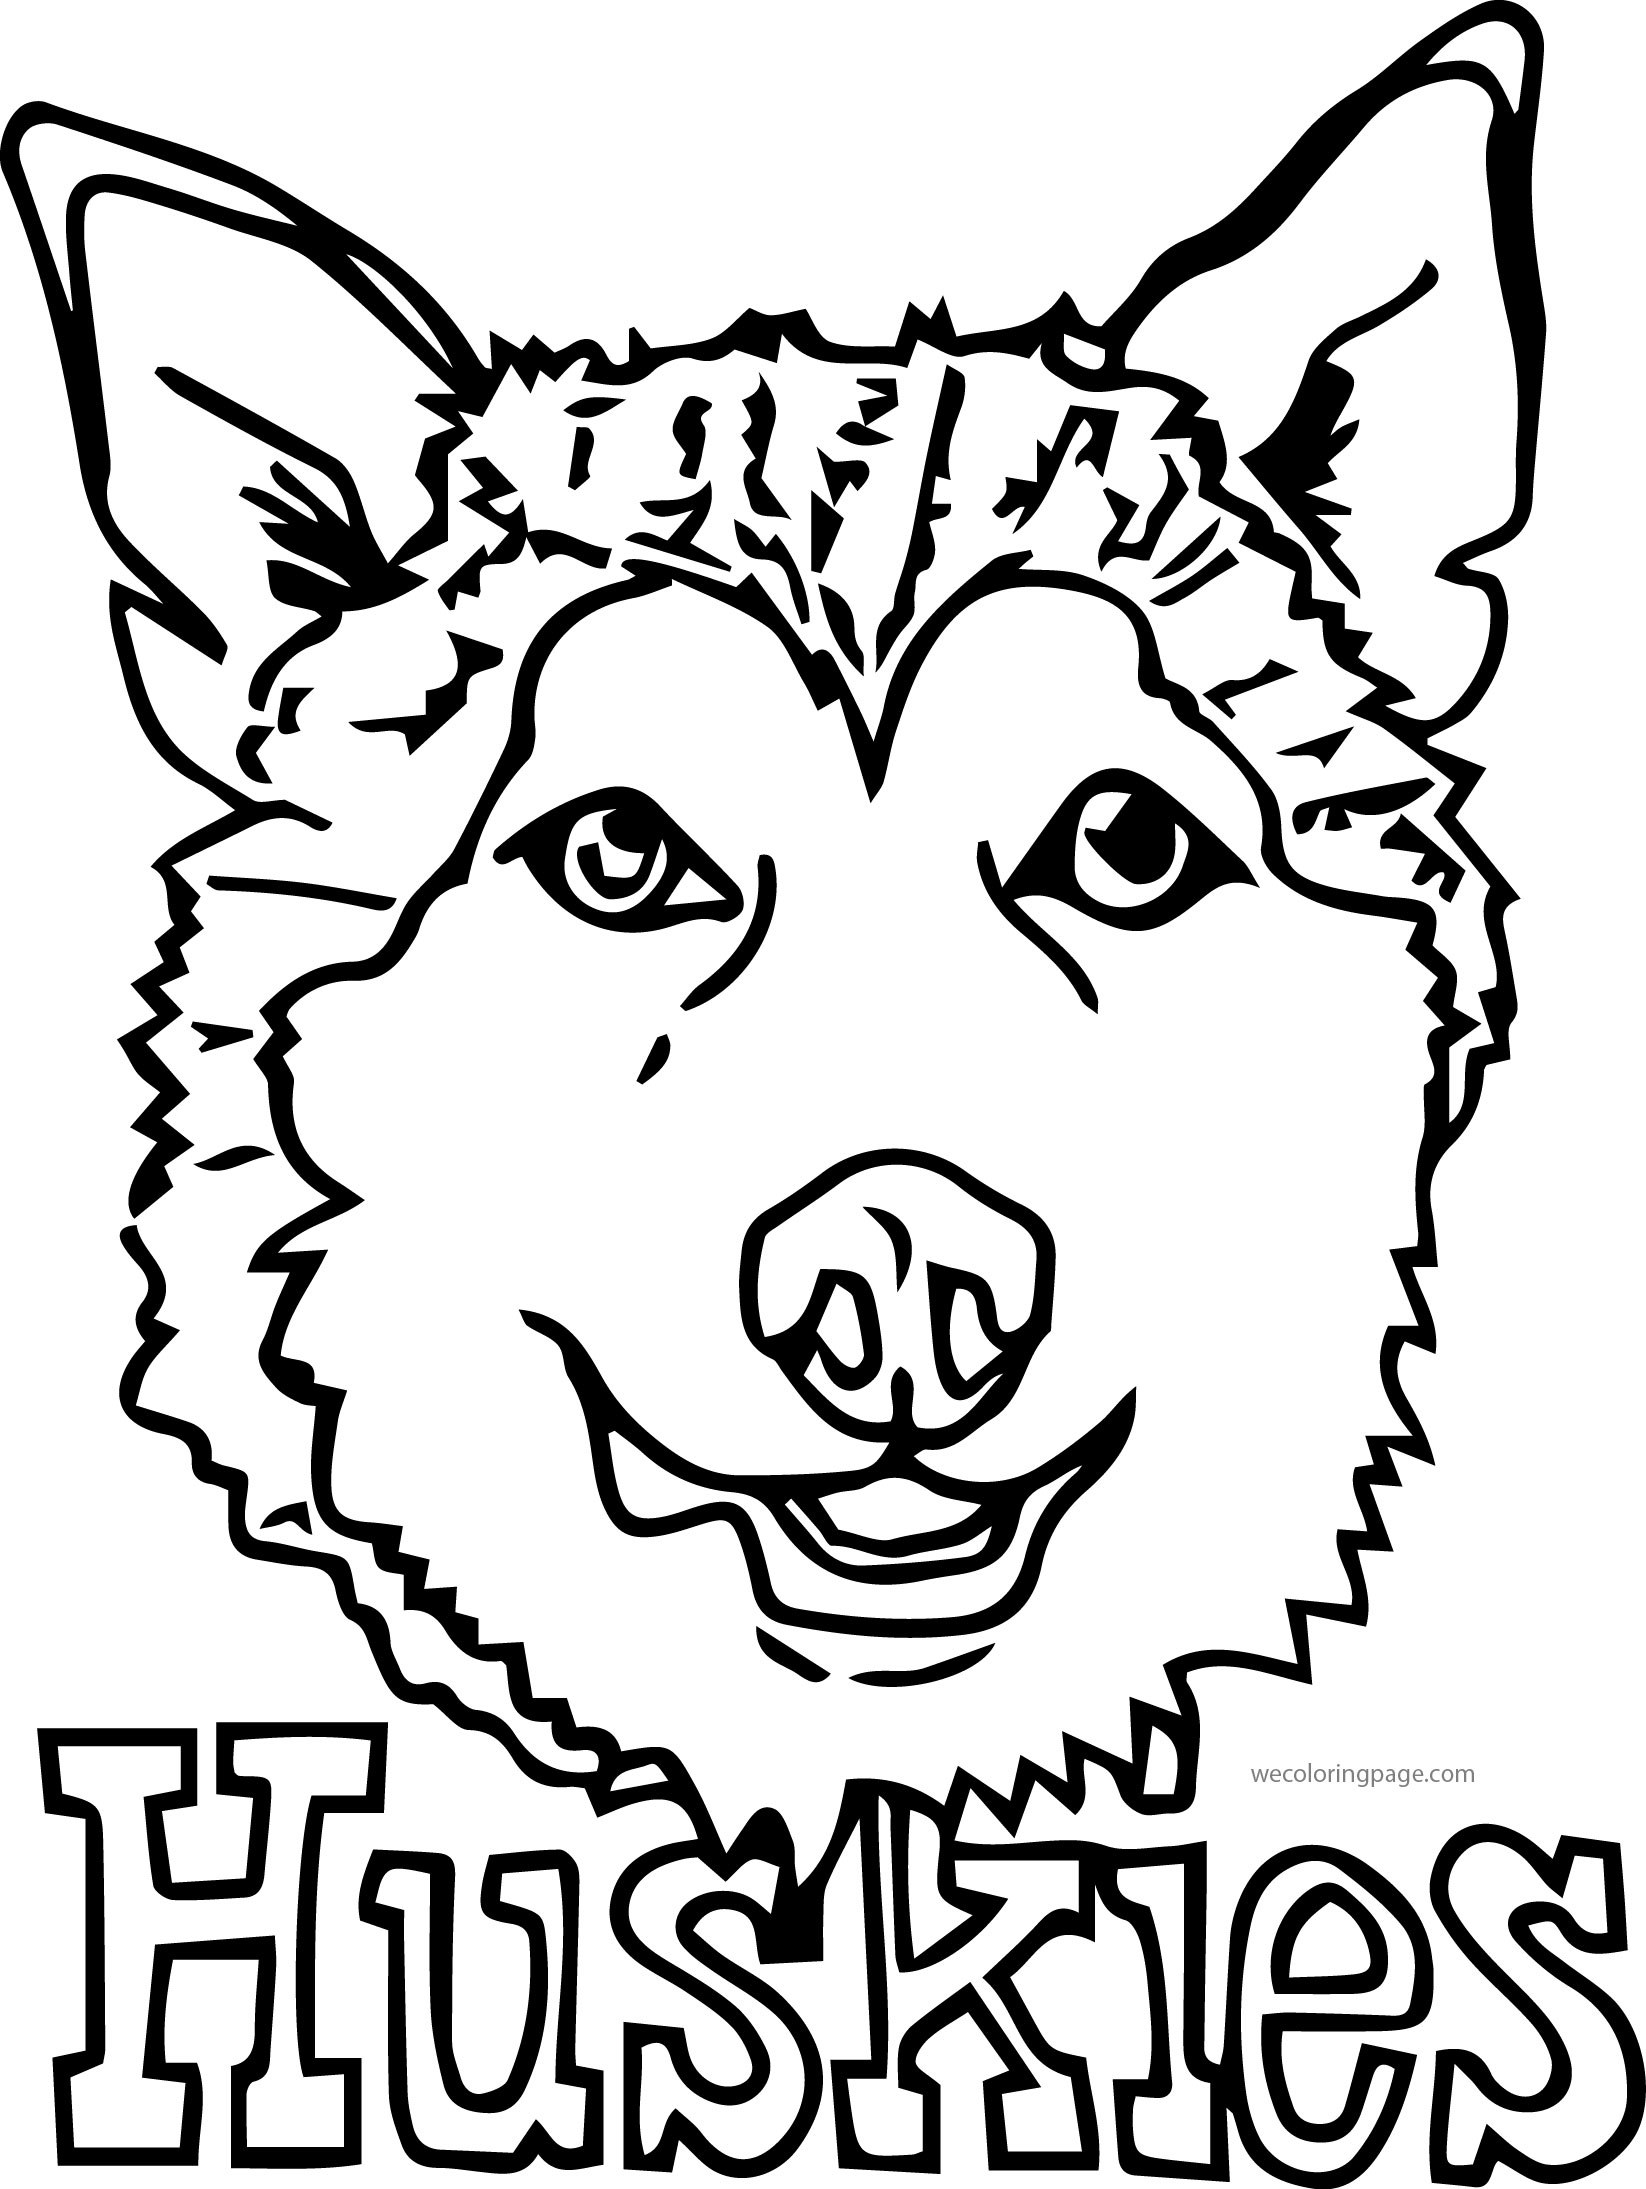 Husky 11 Coloring Page